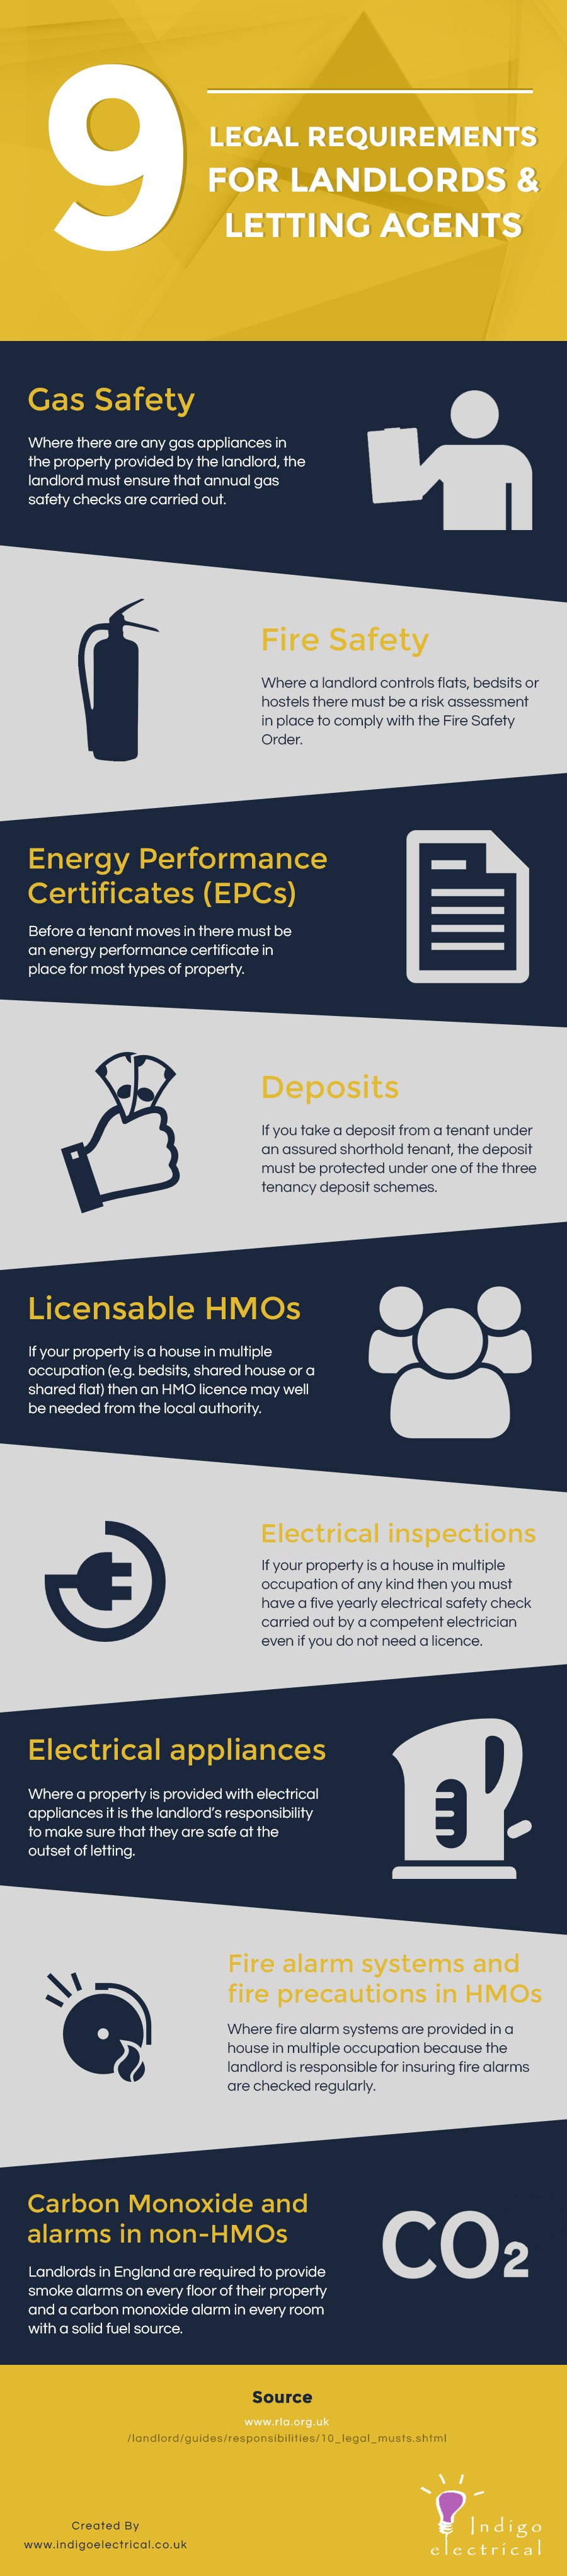 9 Legal Requirements for Landlords and Letting Agents